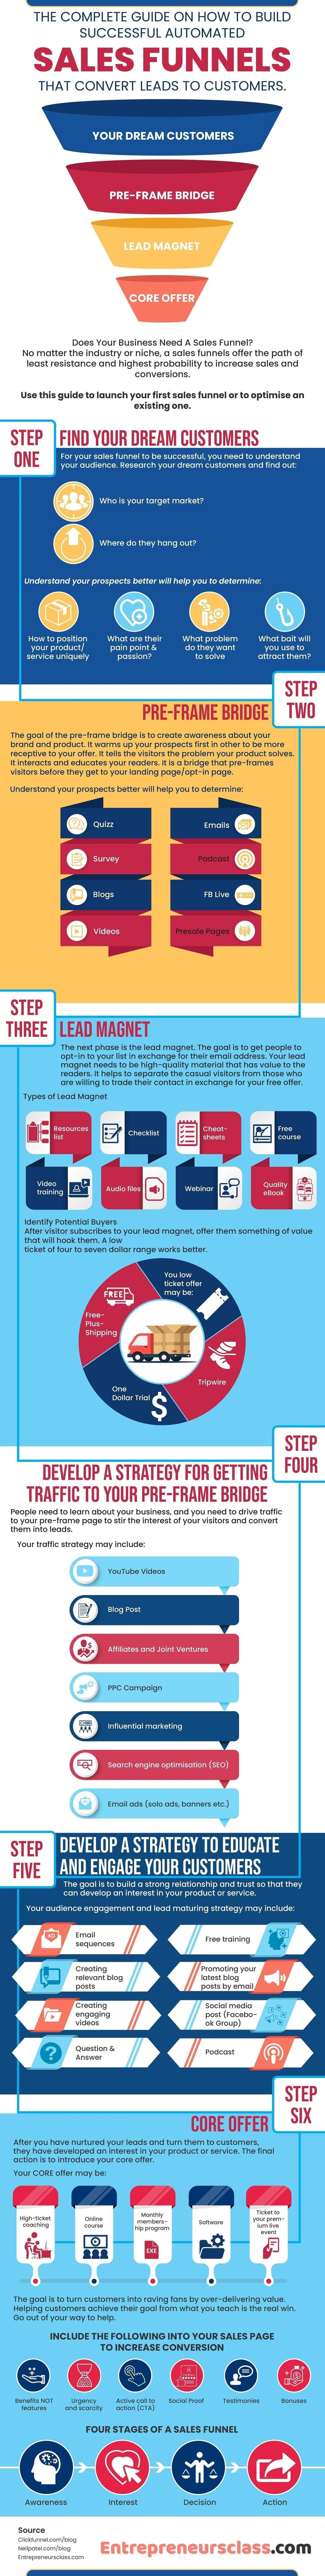 6 Steps To Build A Sales Funnel That Converts Visitors Into Customers #infographic